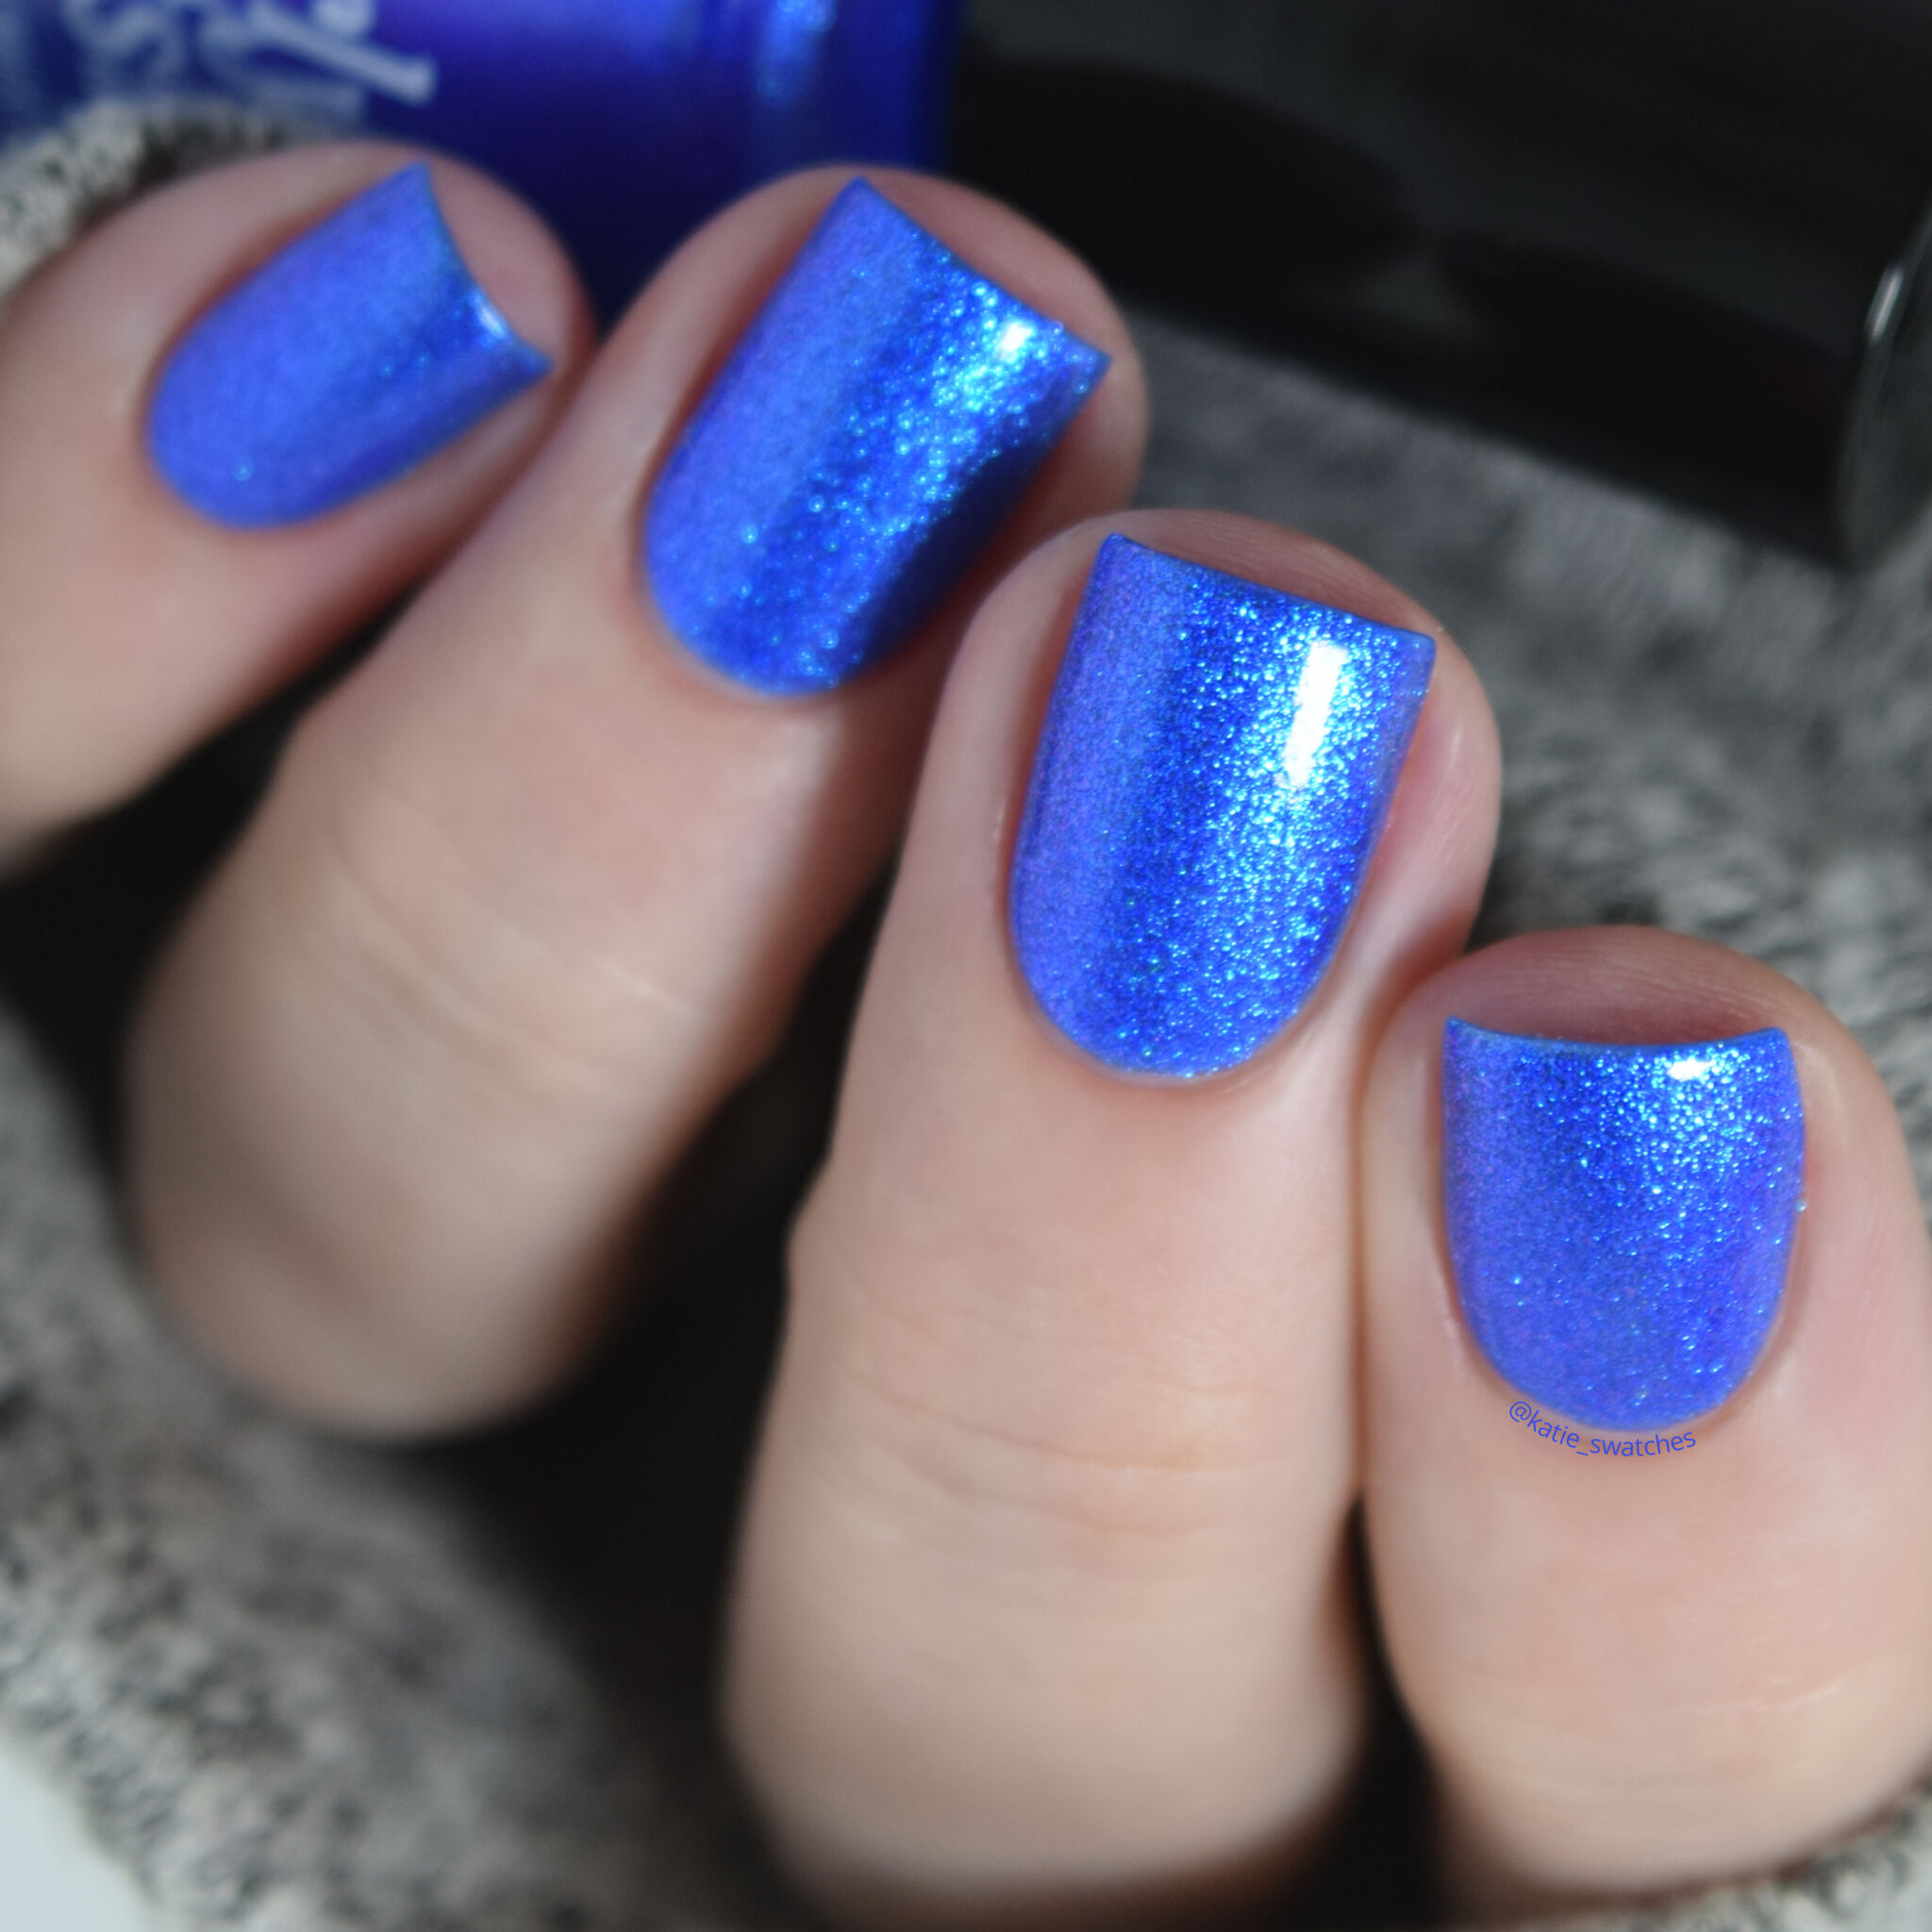 Girly Bits - Hot Dogs nail polish swatch with top coat. Ultramarine blue matte nail polish with a violet/blue shimmer.